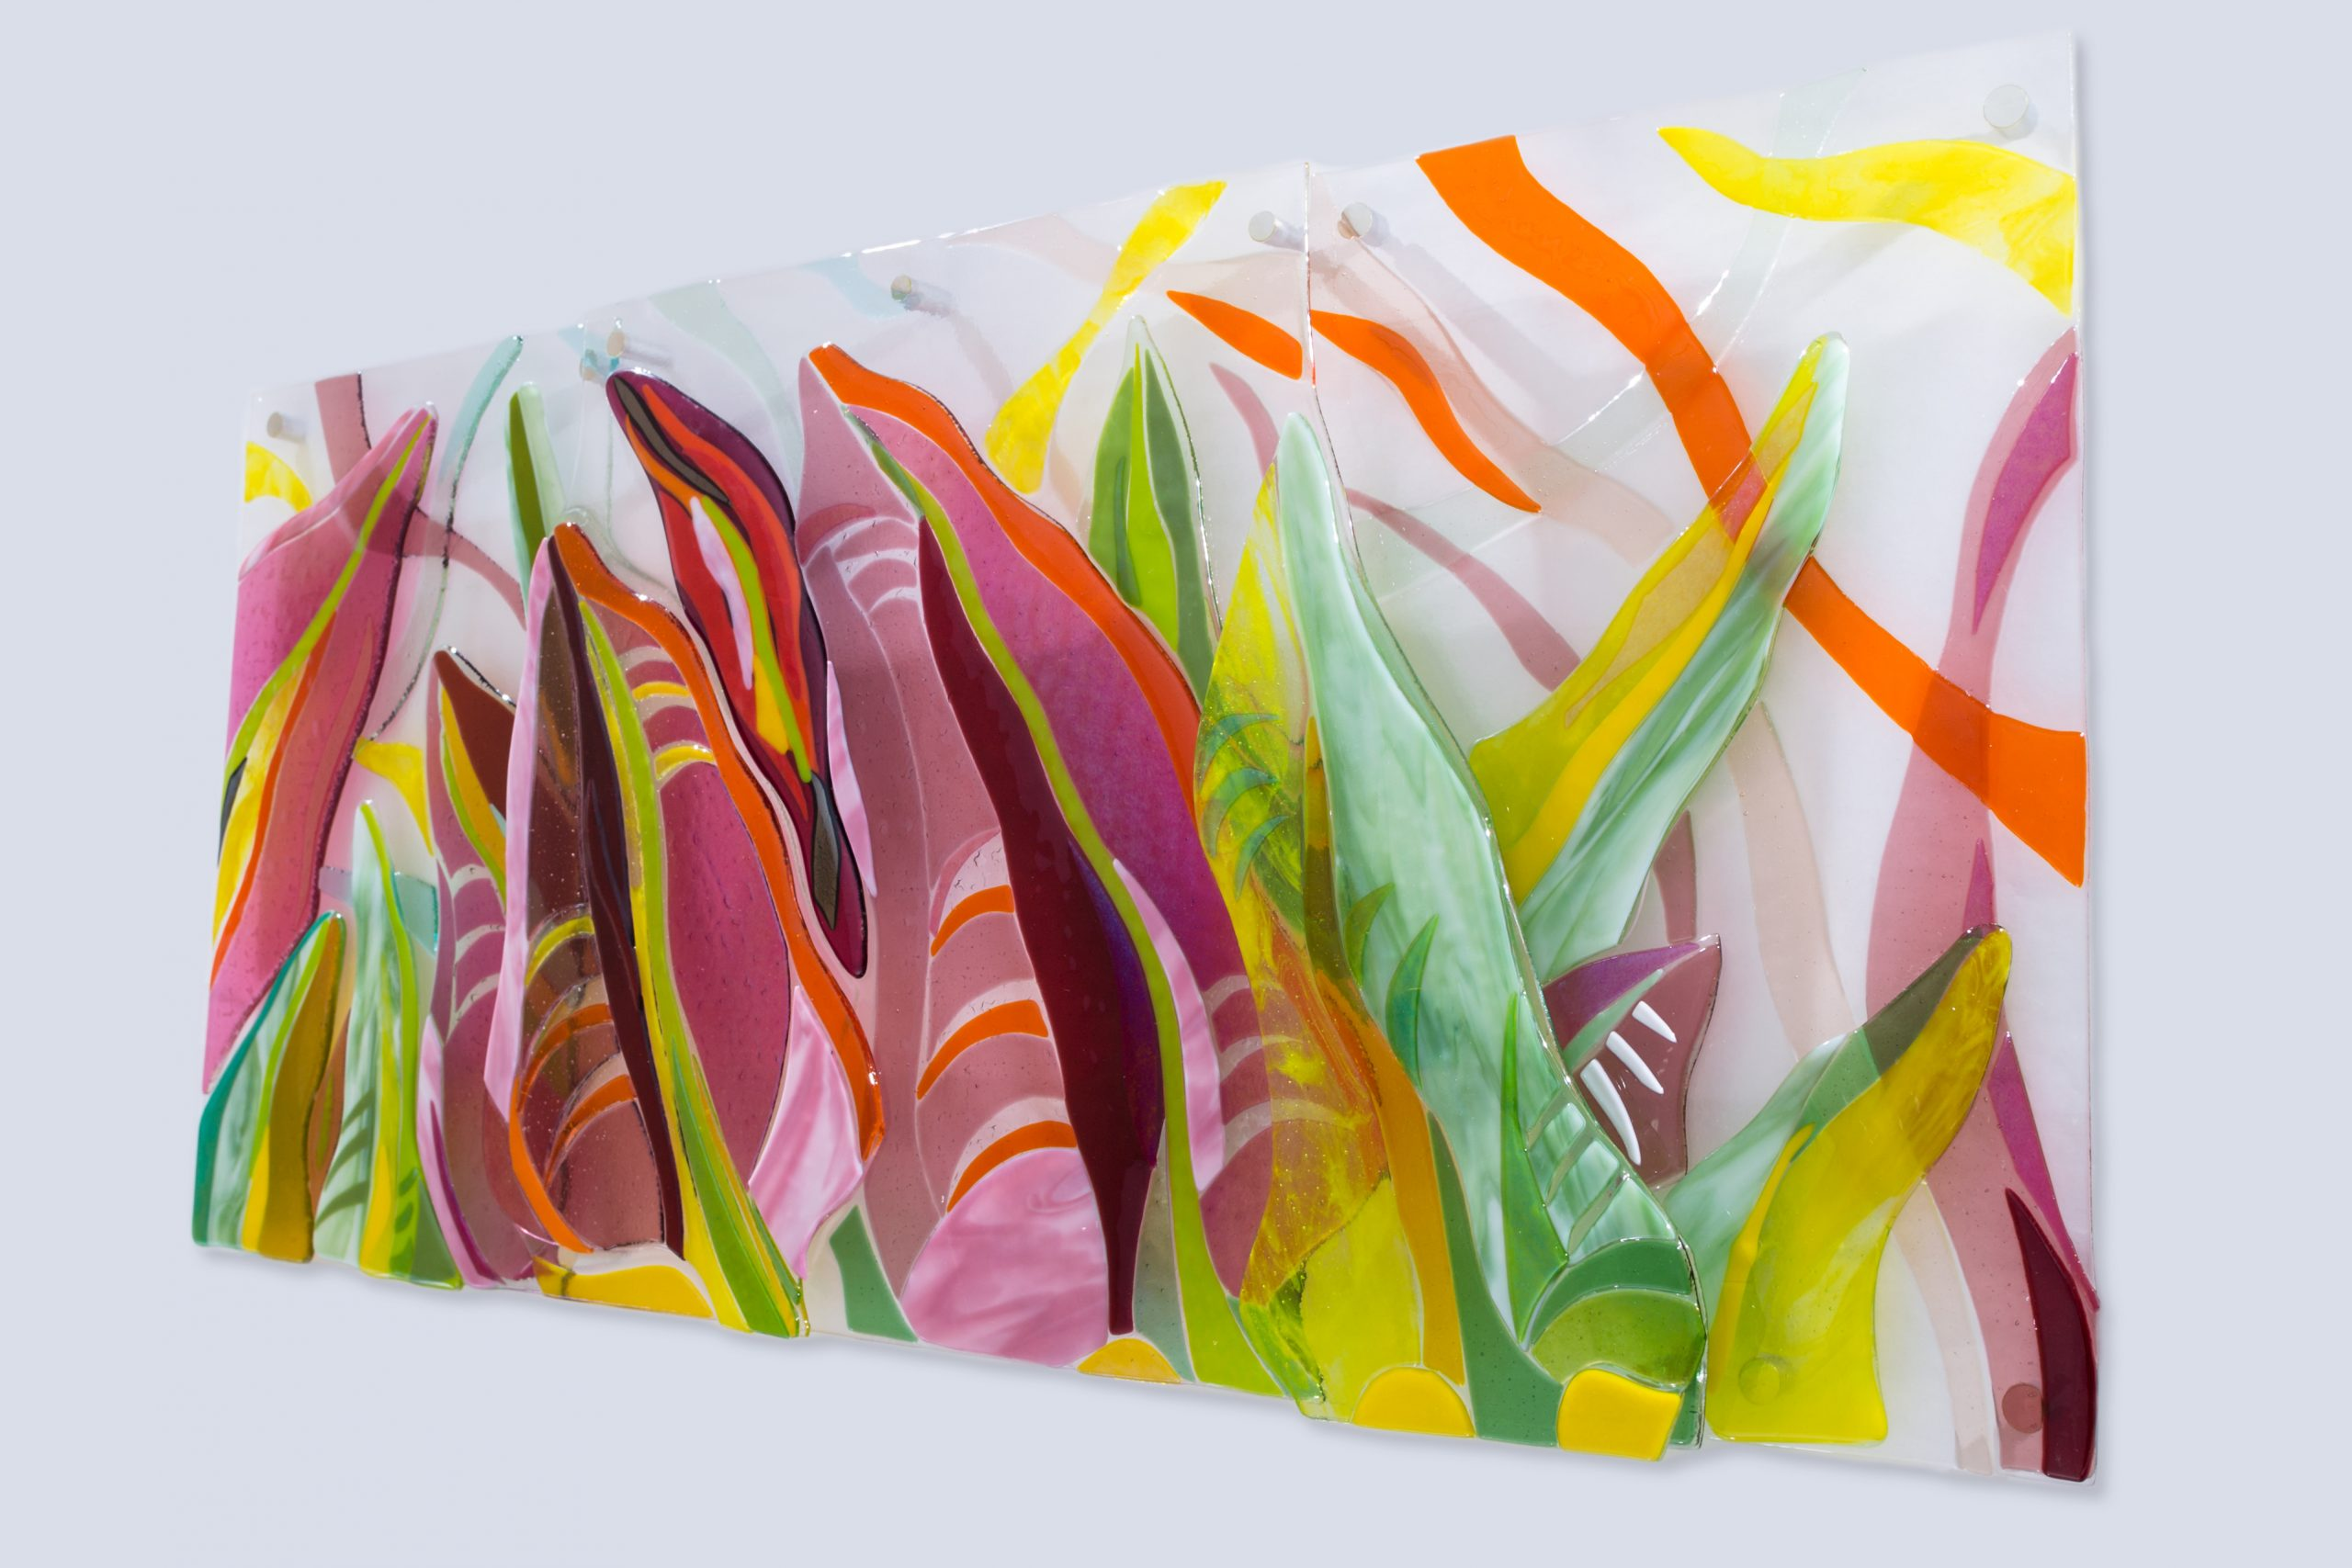 Tropic Breeze, Private Commission for penthouse suite